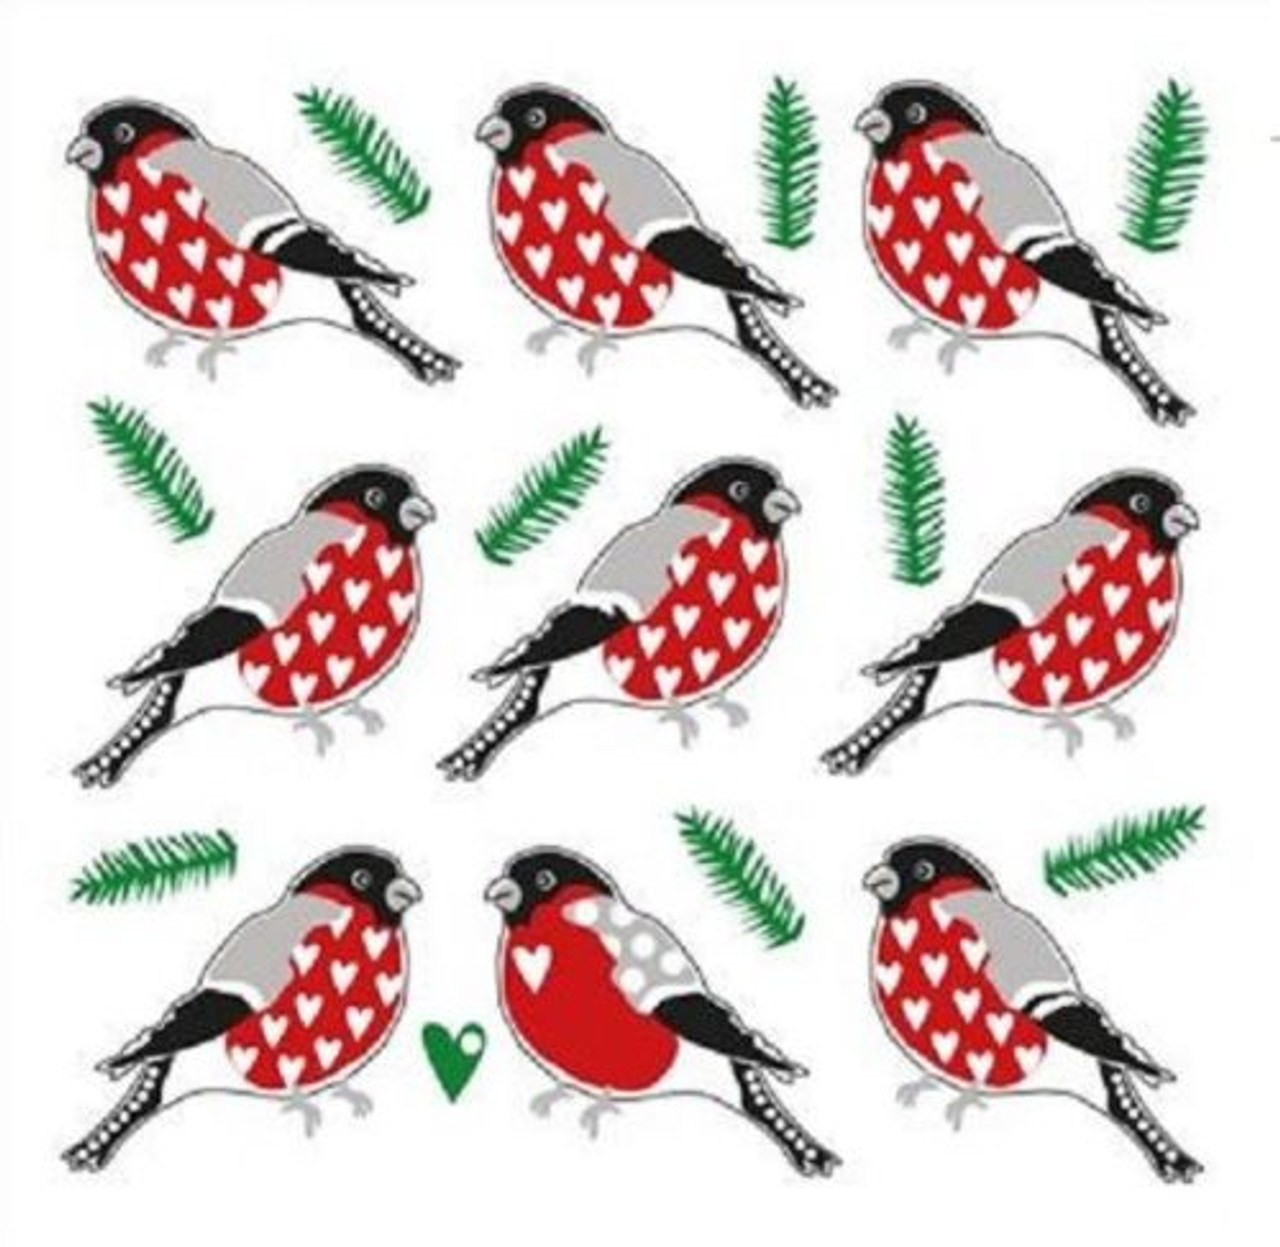 SMALL BIRDS for Decoupage Craft 4 x Vintage PAPER Table NAPKINS Party